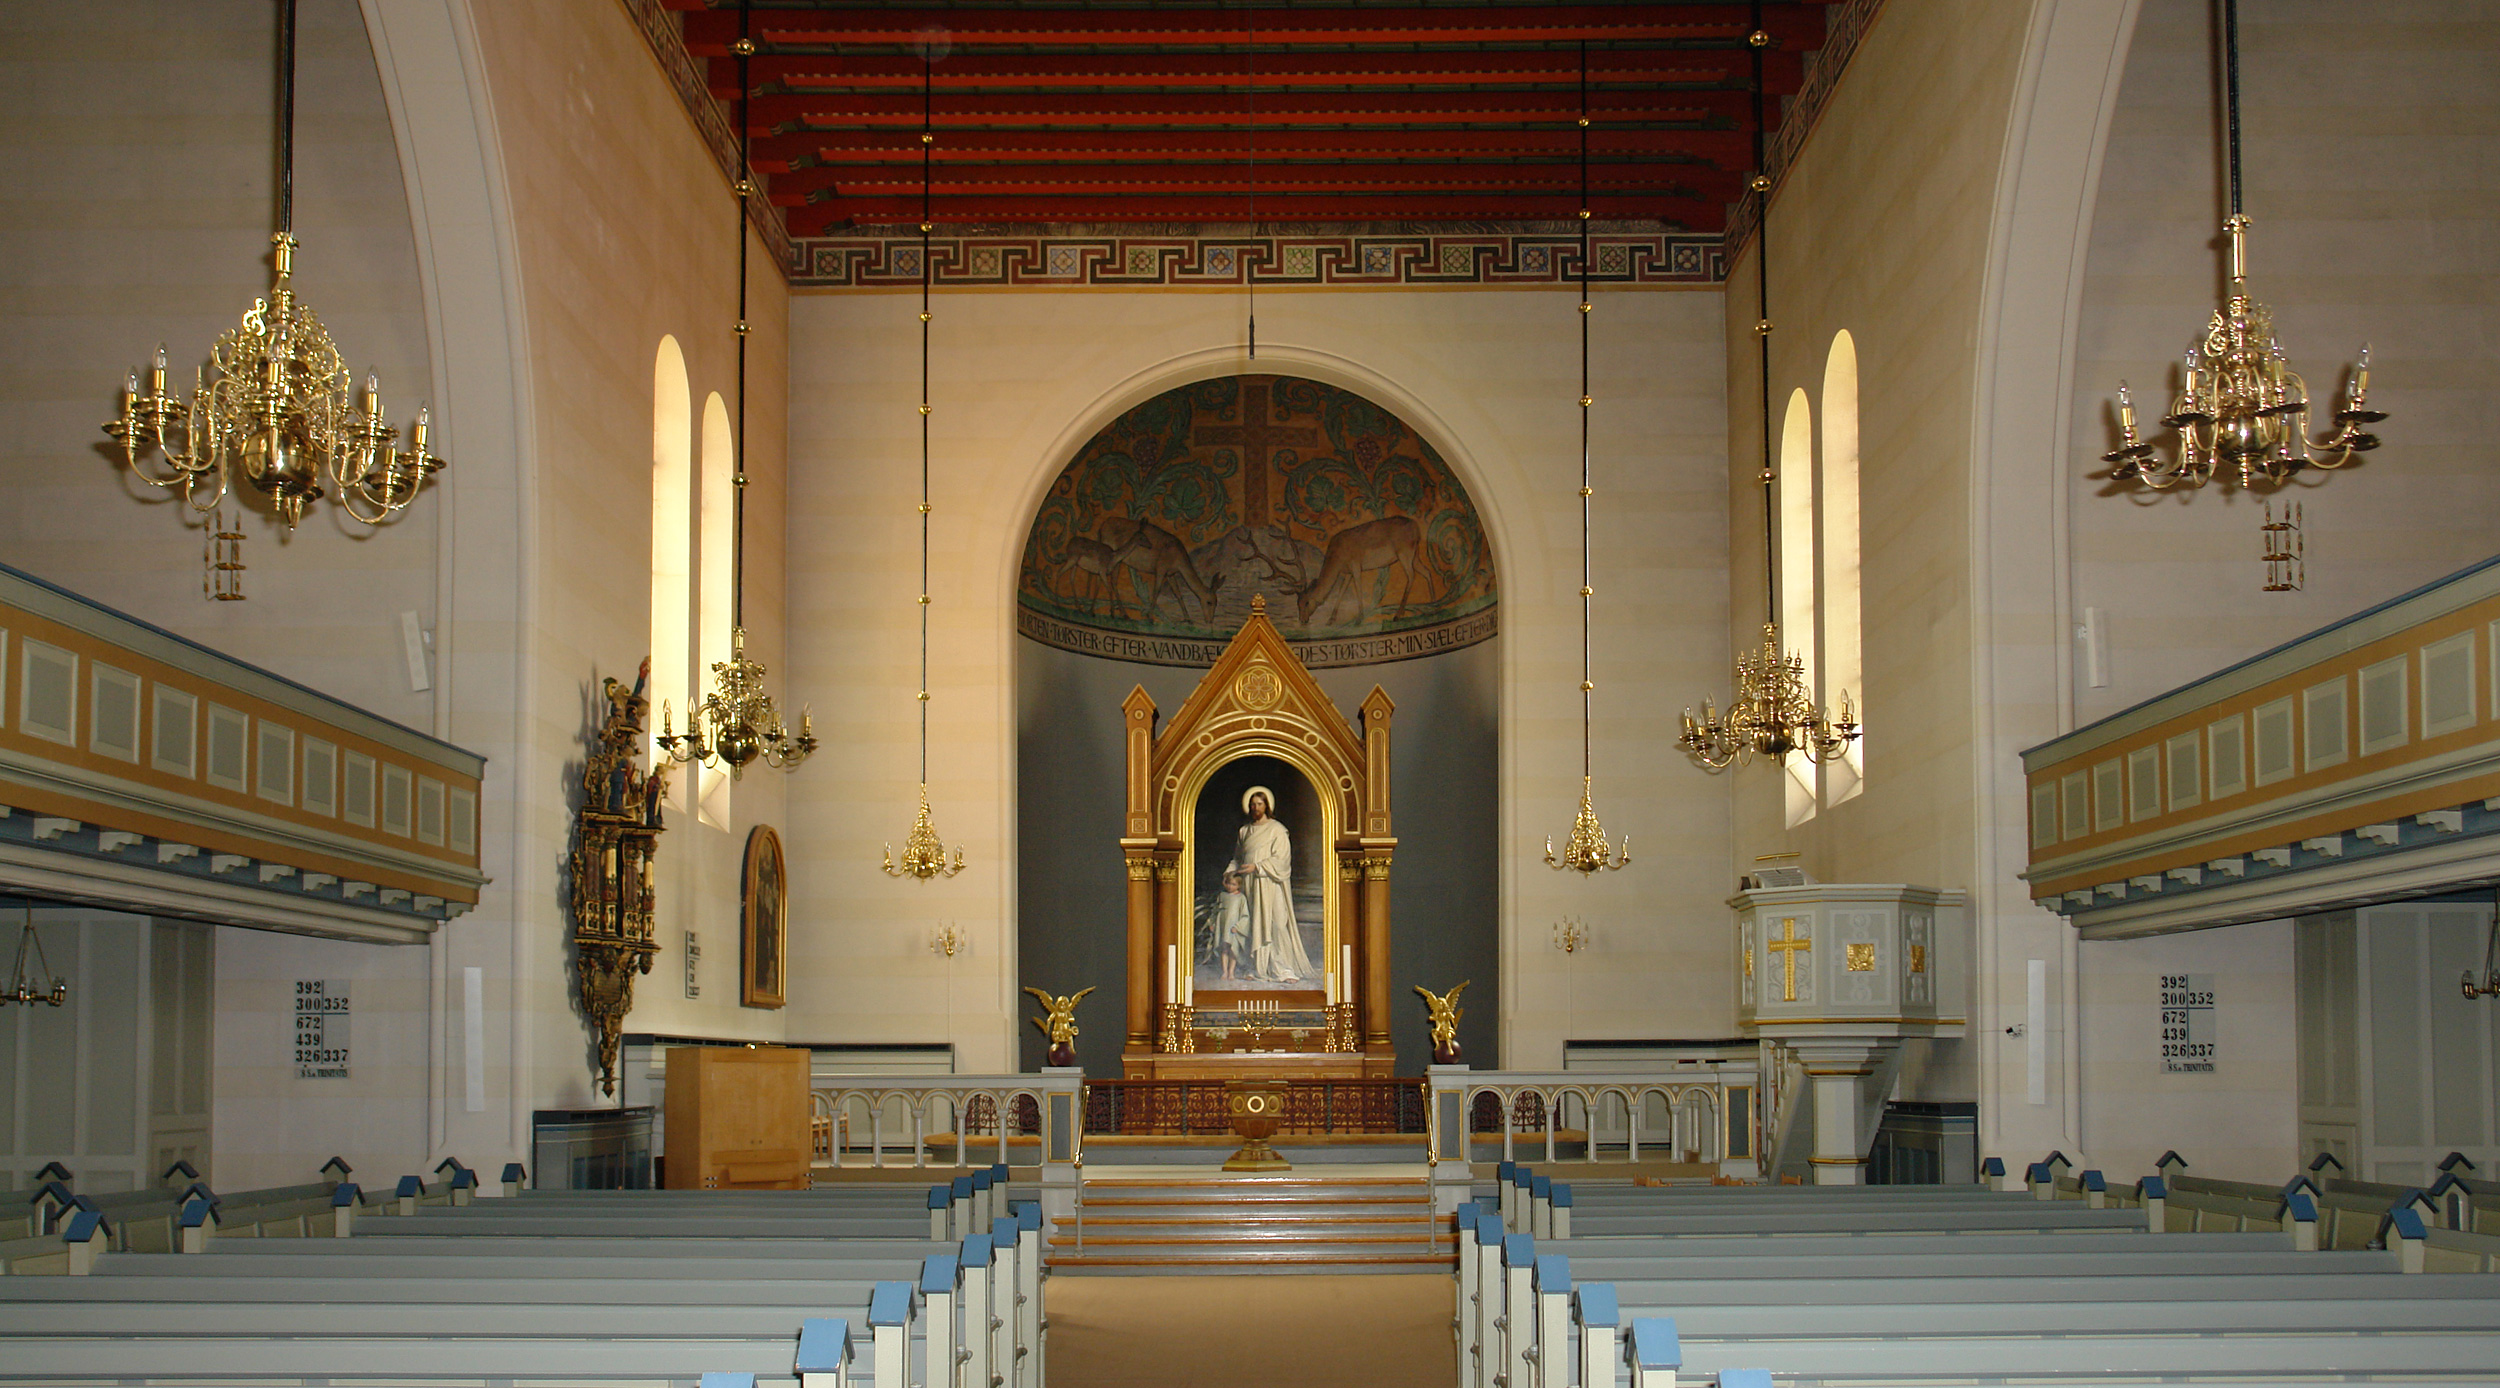 Interior of the  Skt. Nikolai Kirke  Holbaek, Denmark.